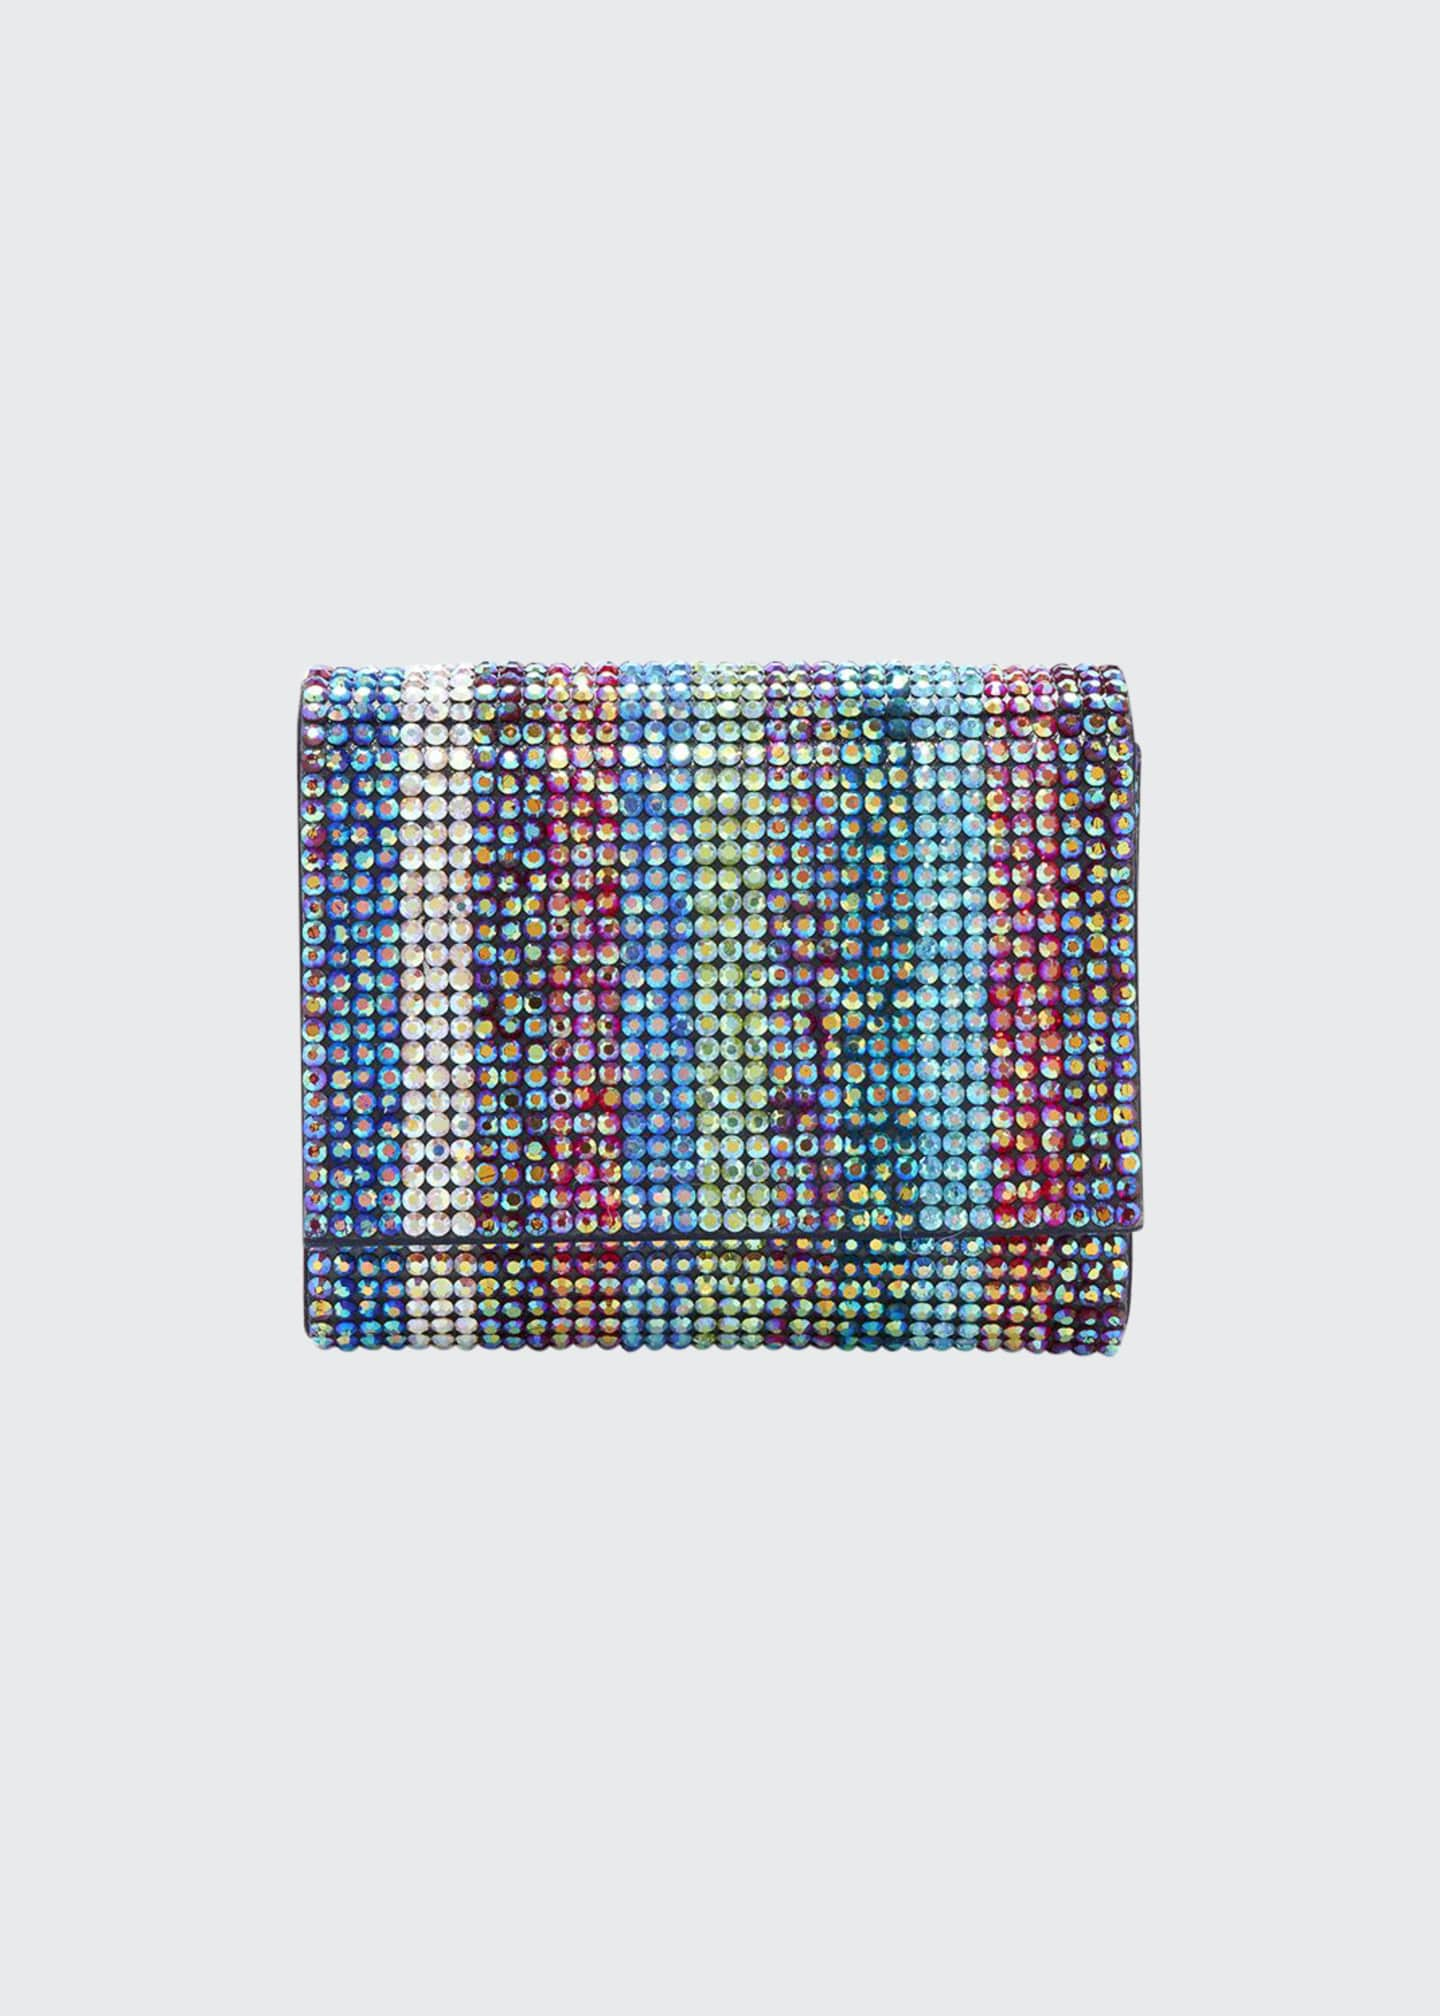 Judith Leiber Couture Fizzy Fullbead Multicolored Crystal Clutch